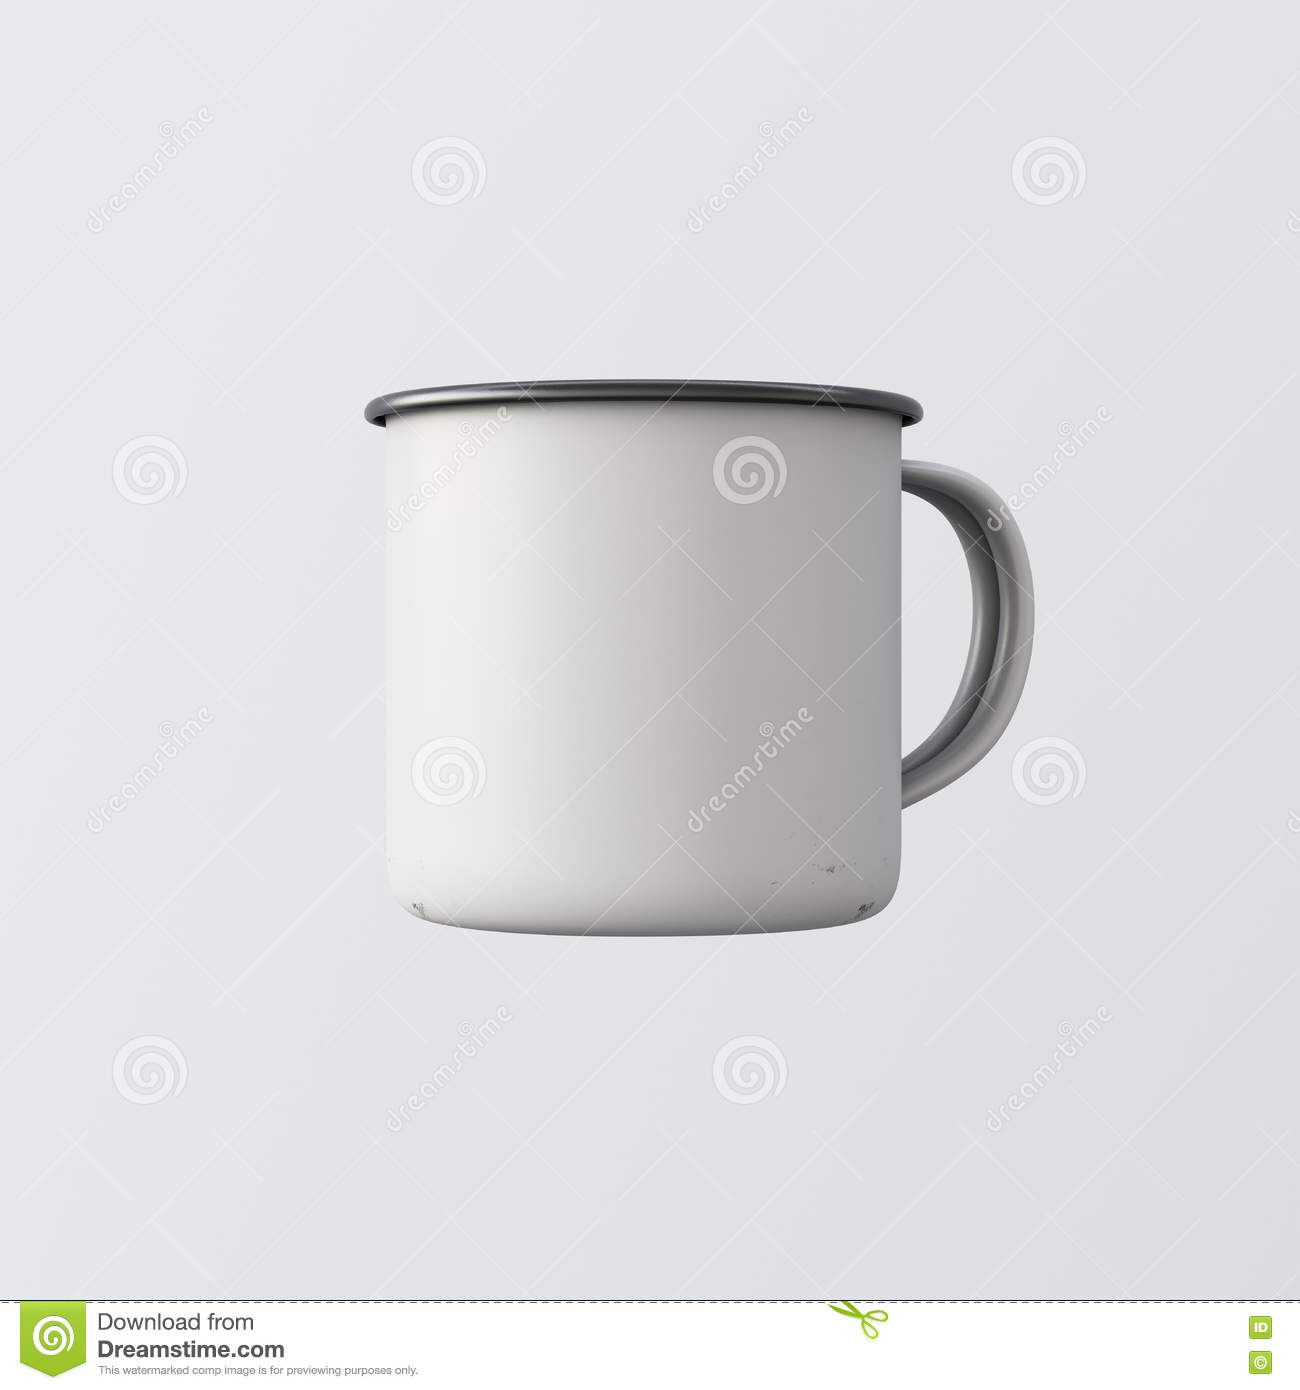 dc53ef7b54b One Blank White Color Metal Coffee Mug Isolated Empty Background ...